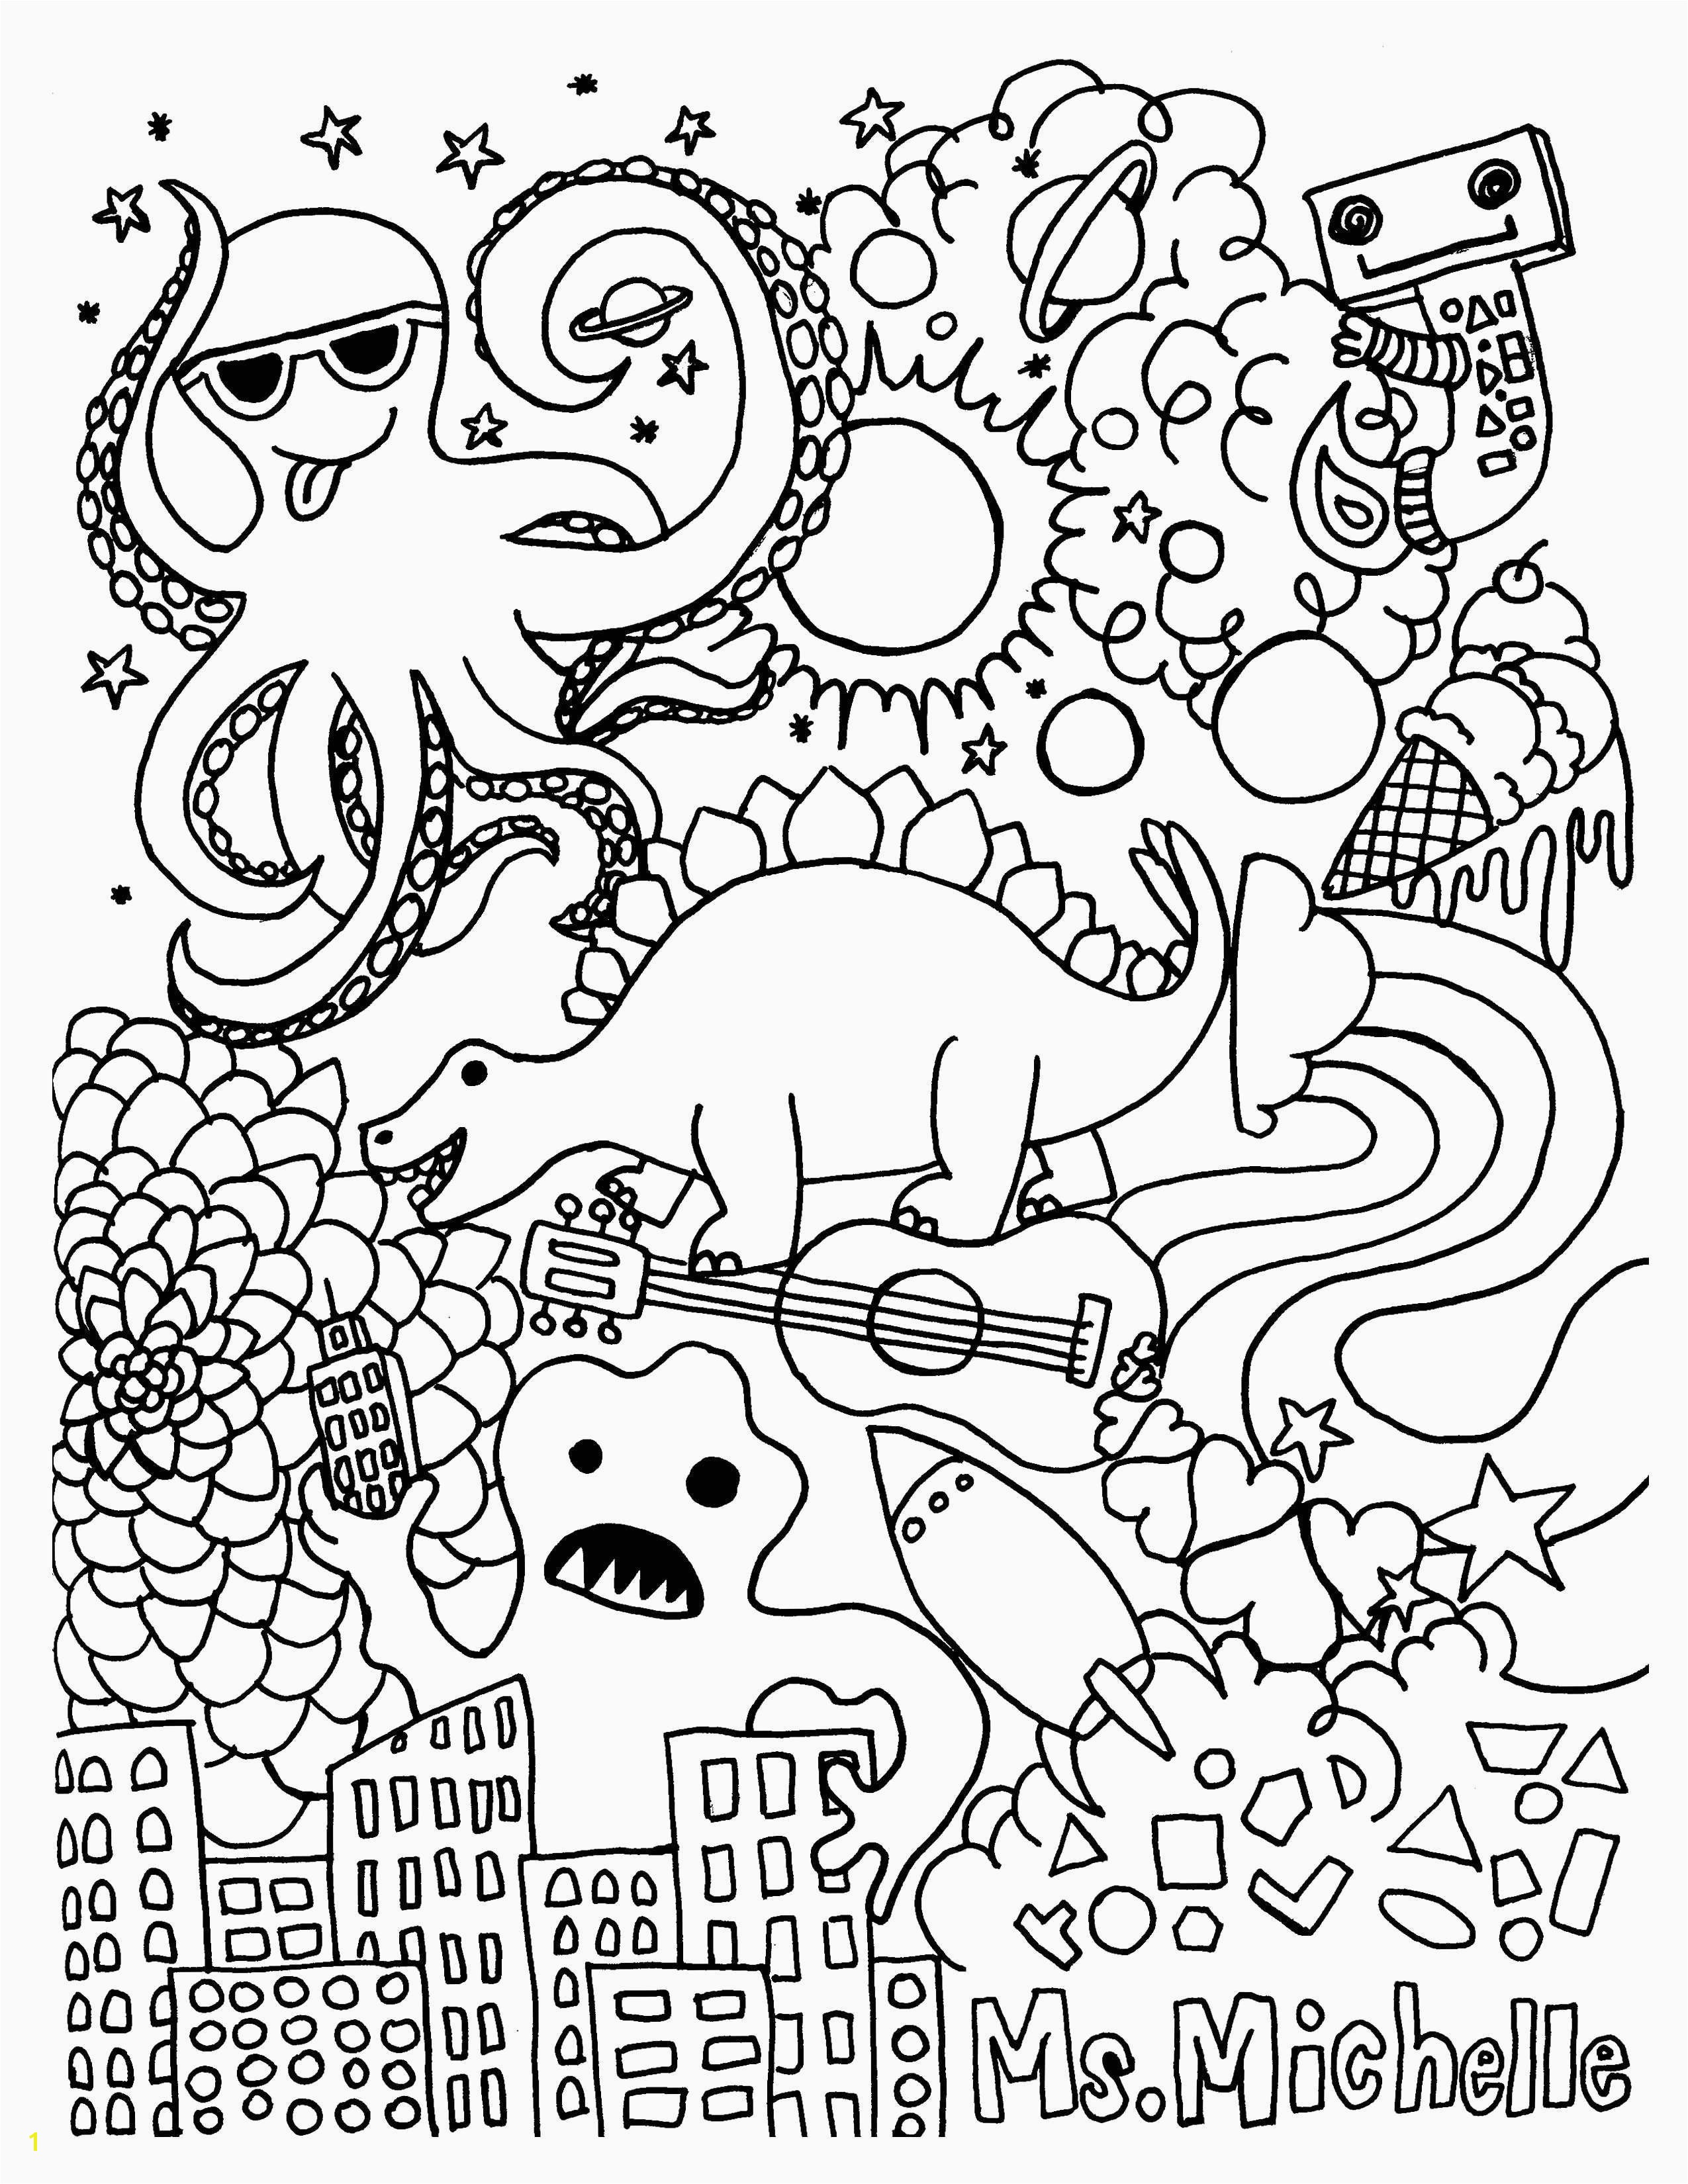 Free Coloring Pages for Christmas 22 Free Christmas Balls Coloring Pages